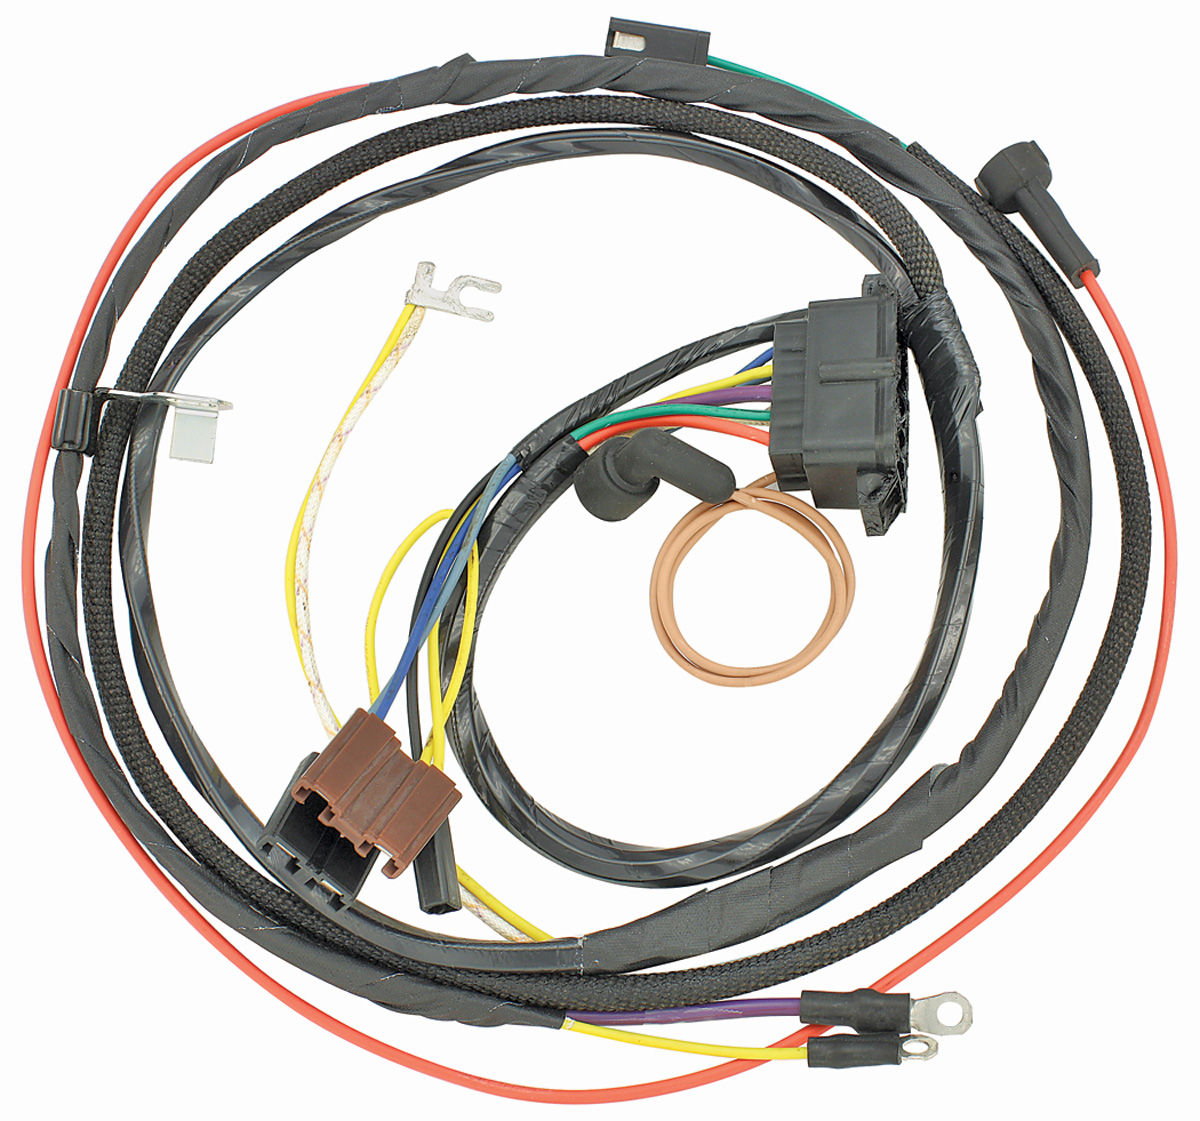 small resolution of 1972 chevelle engine wiring harness trusted wiring diagram 1966 chevelle distributor wiring 1966 chevelle ss wiring diagram